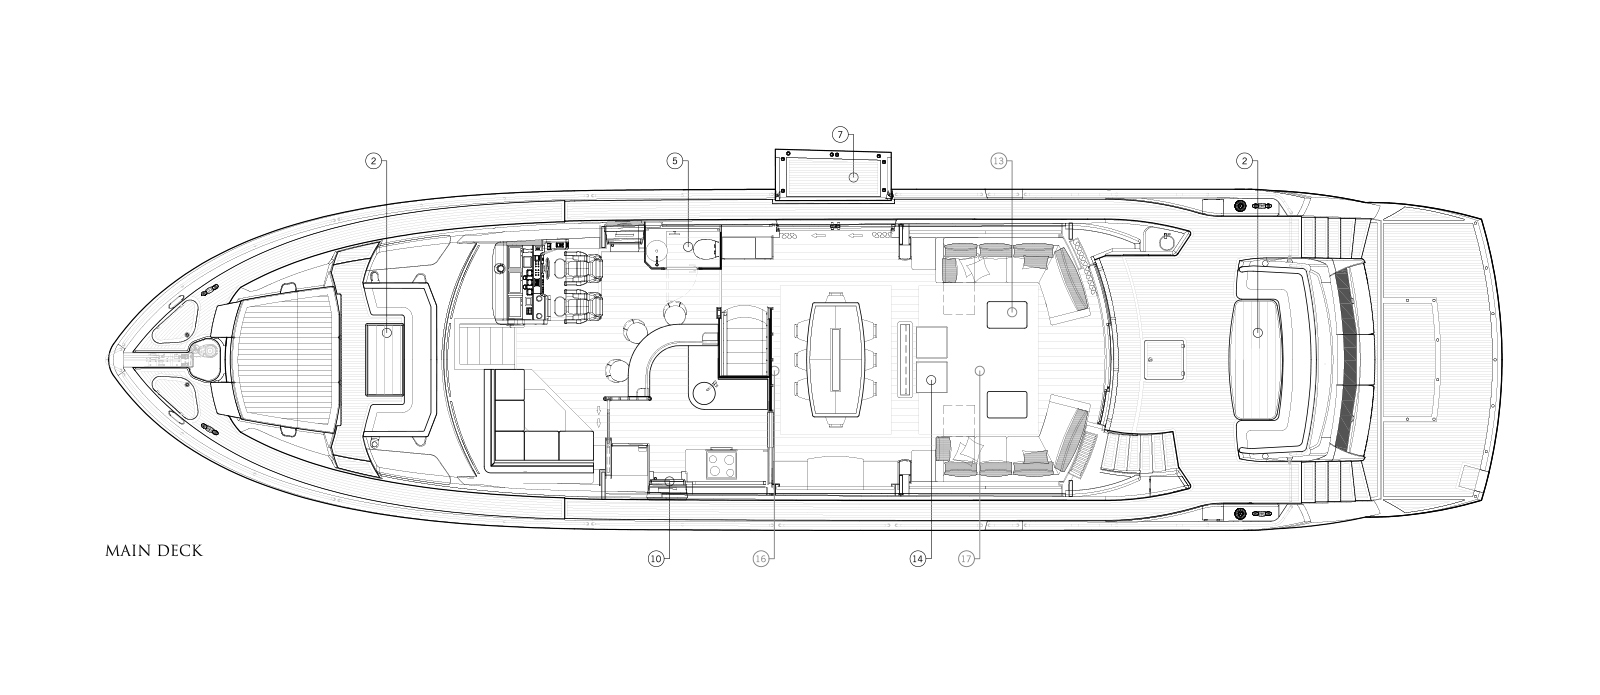 Sunseeker 86 Yacht - Main Deck - Layout